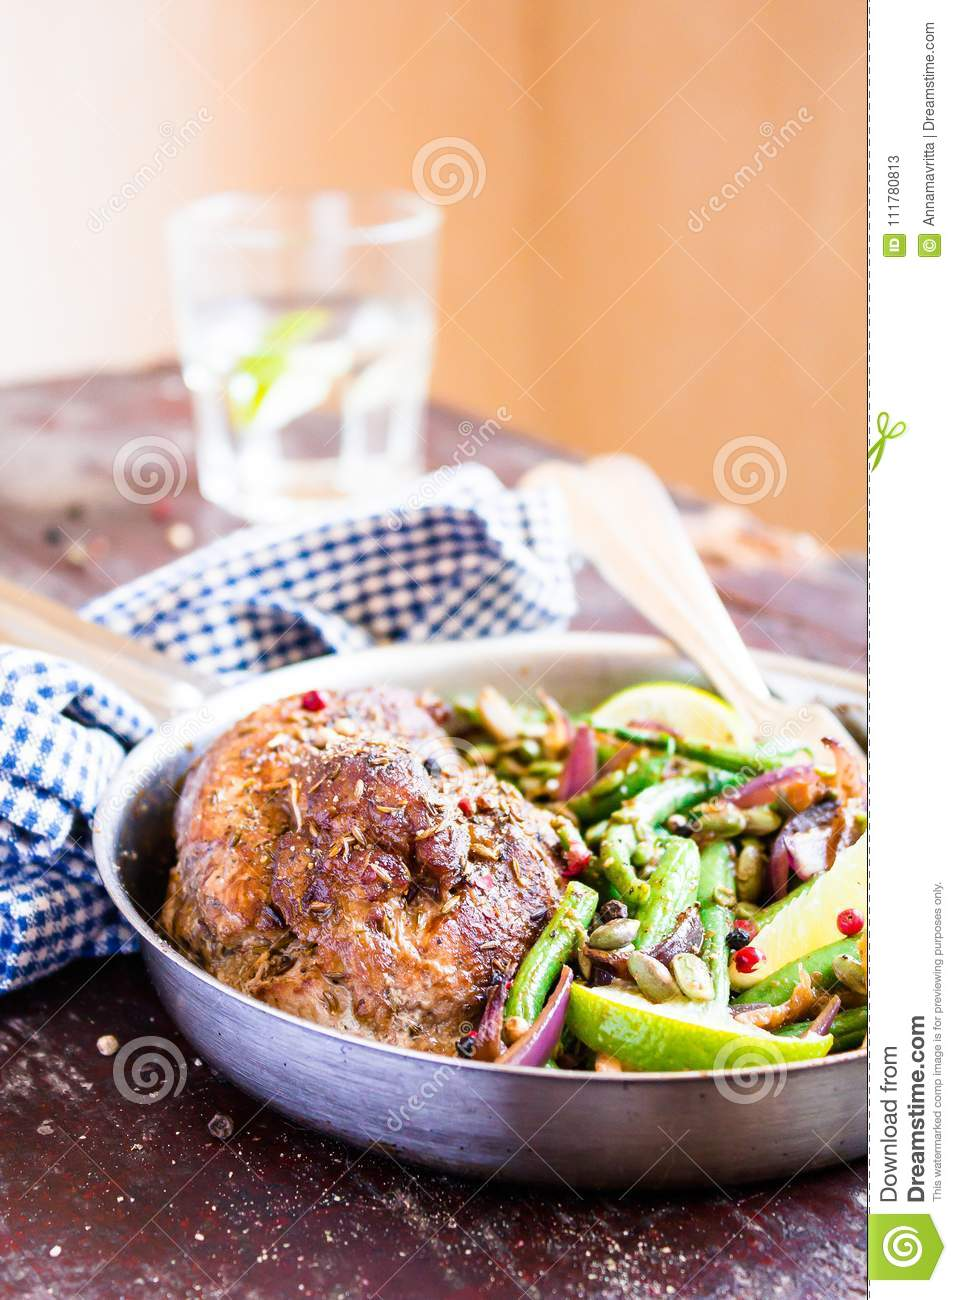 Cooking pan of gourmet meal. Roasted pork loin with spices served with warm salad made from green beans, onion, lime fruit